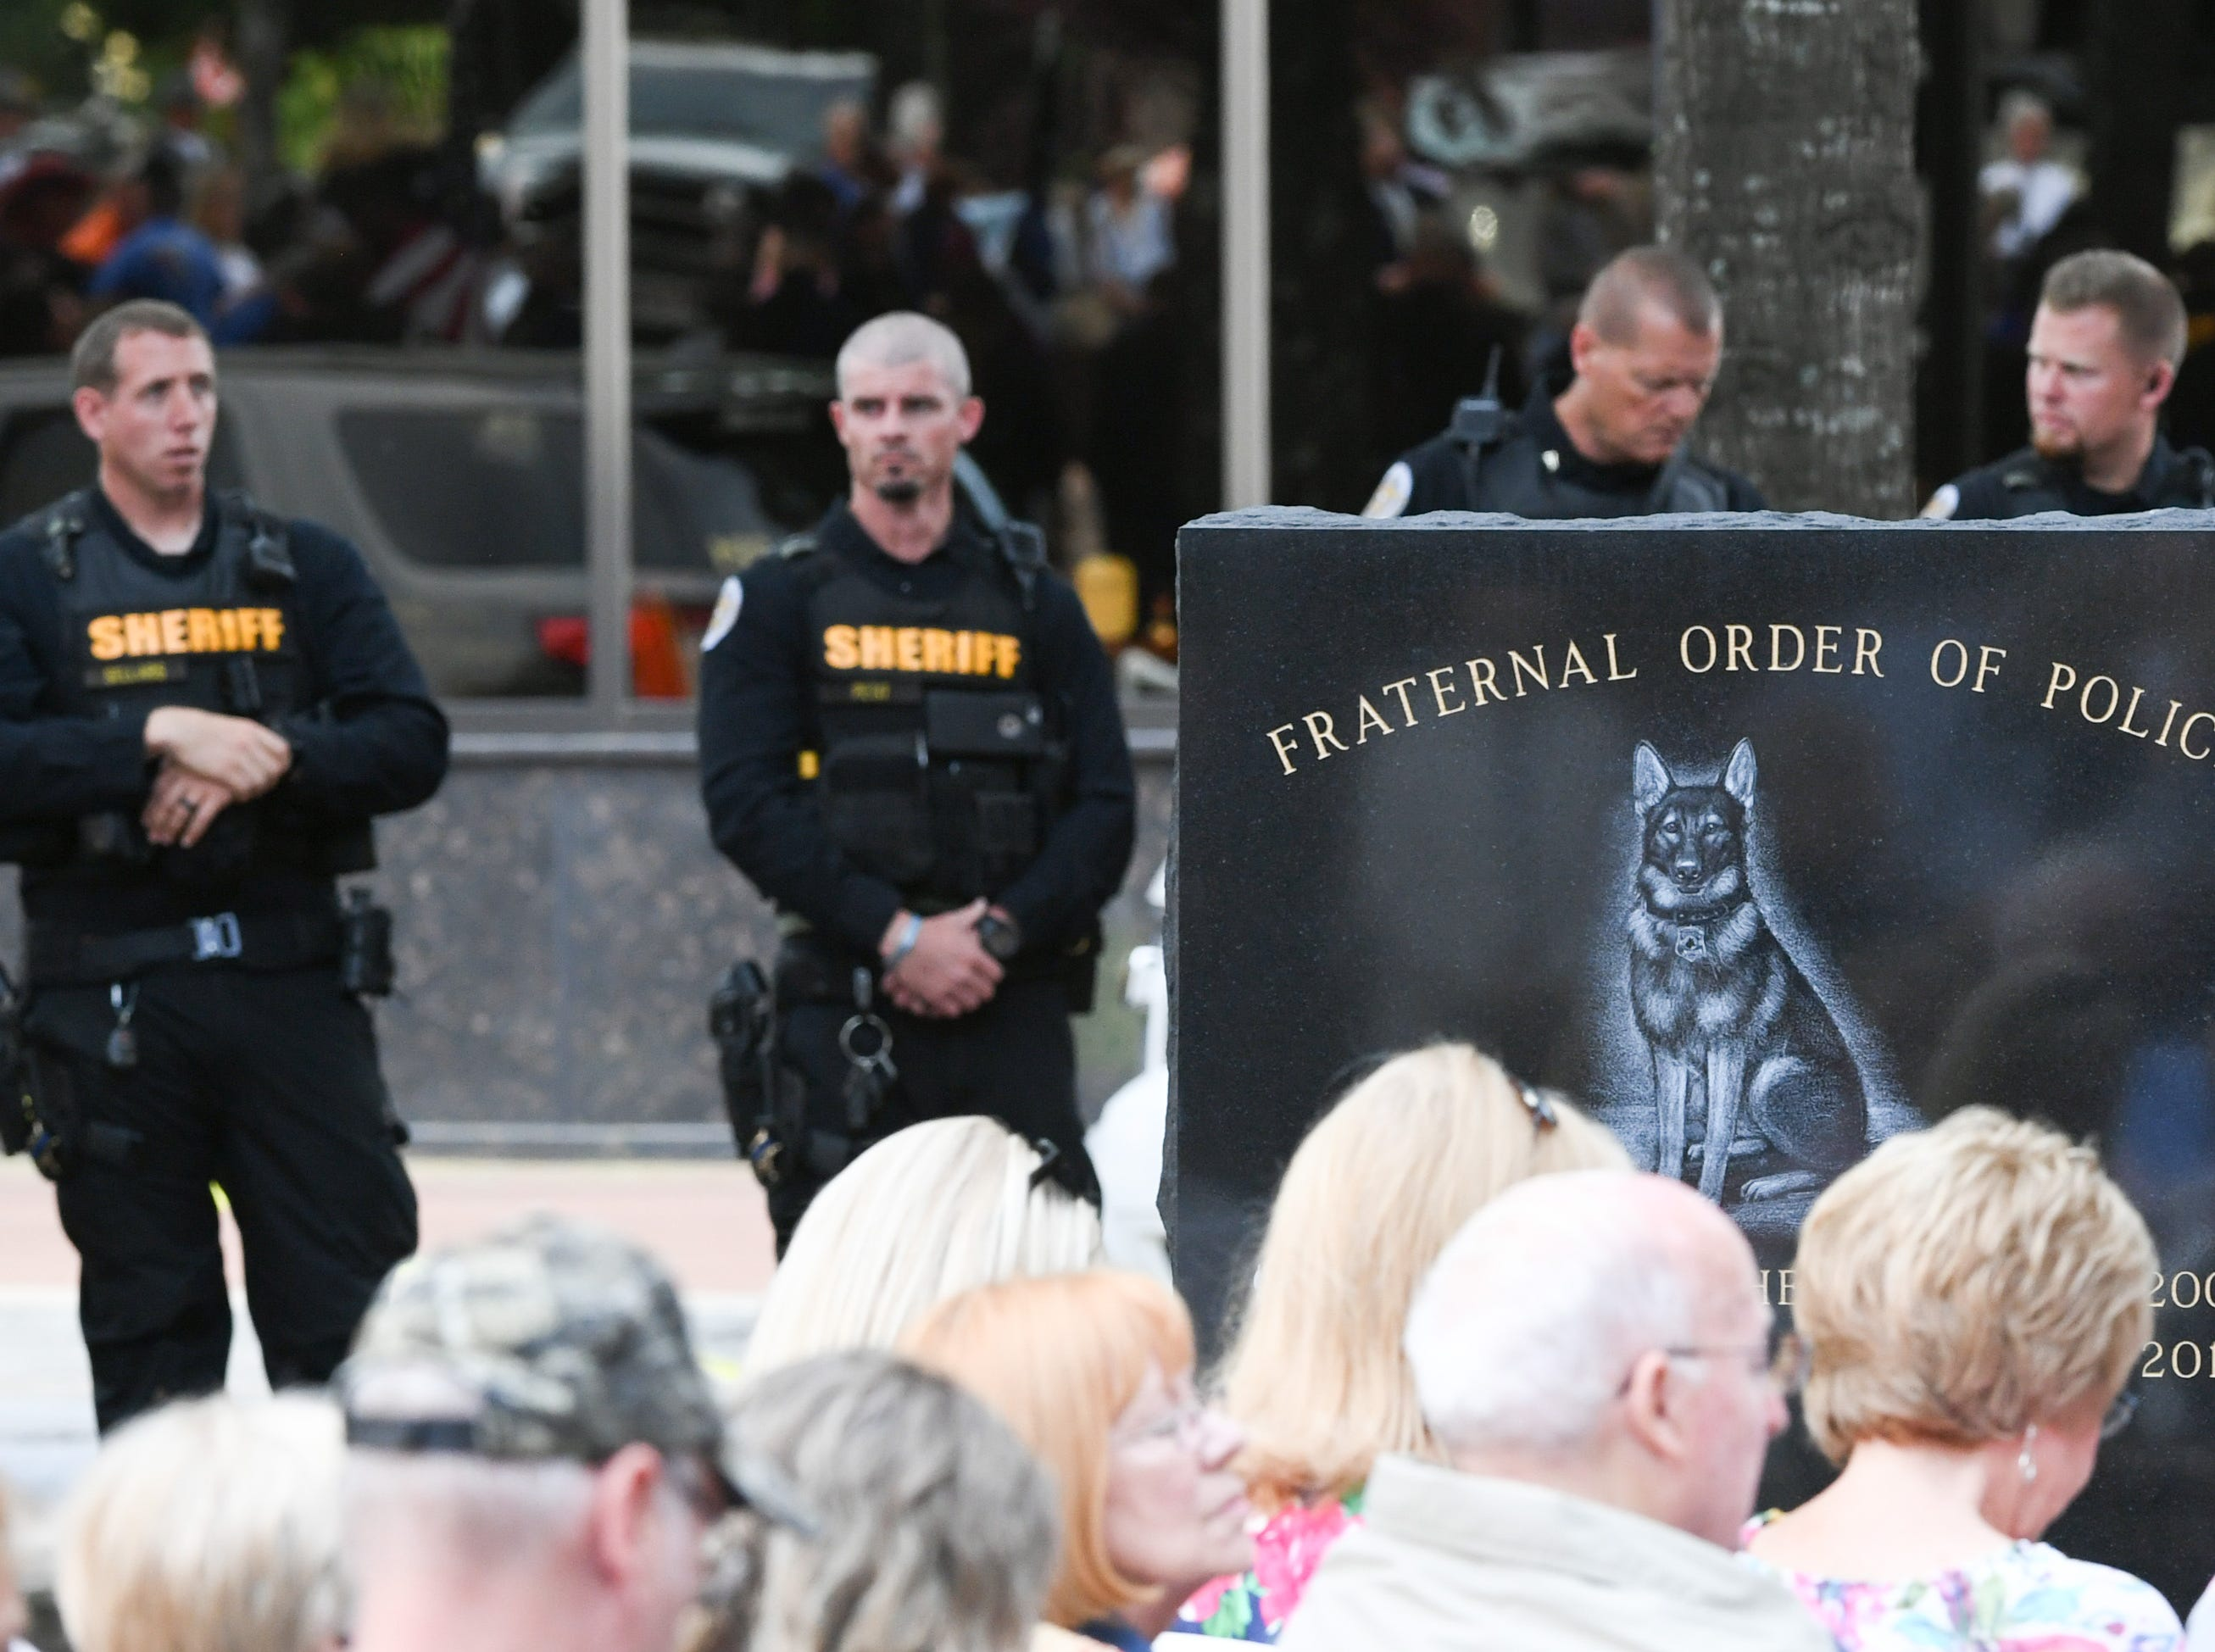 A monunment honoring Duchess and Hyco, two dogs from Anderson County who died in the line of duty was unveiled during the 2019 Peace Officer Memorial Service in front of the Anderson County Courthouse Wednesday May 15, 2019.